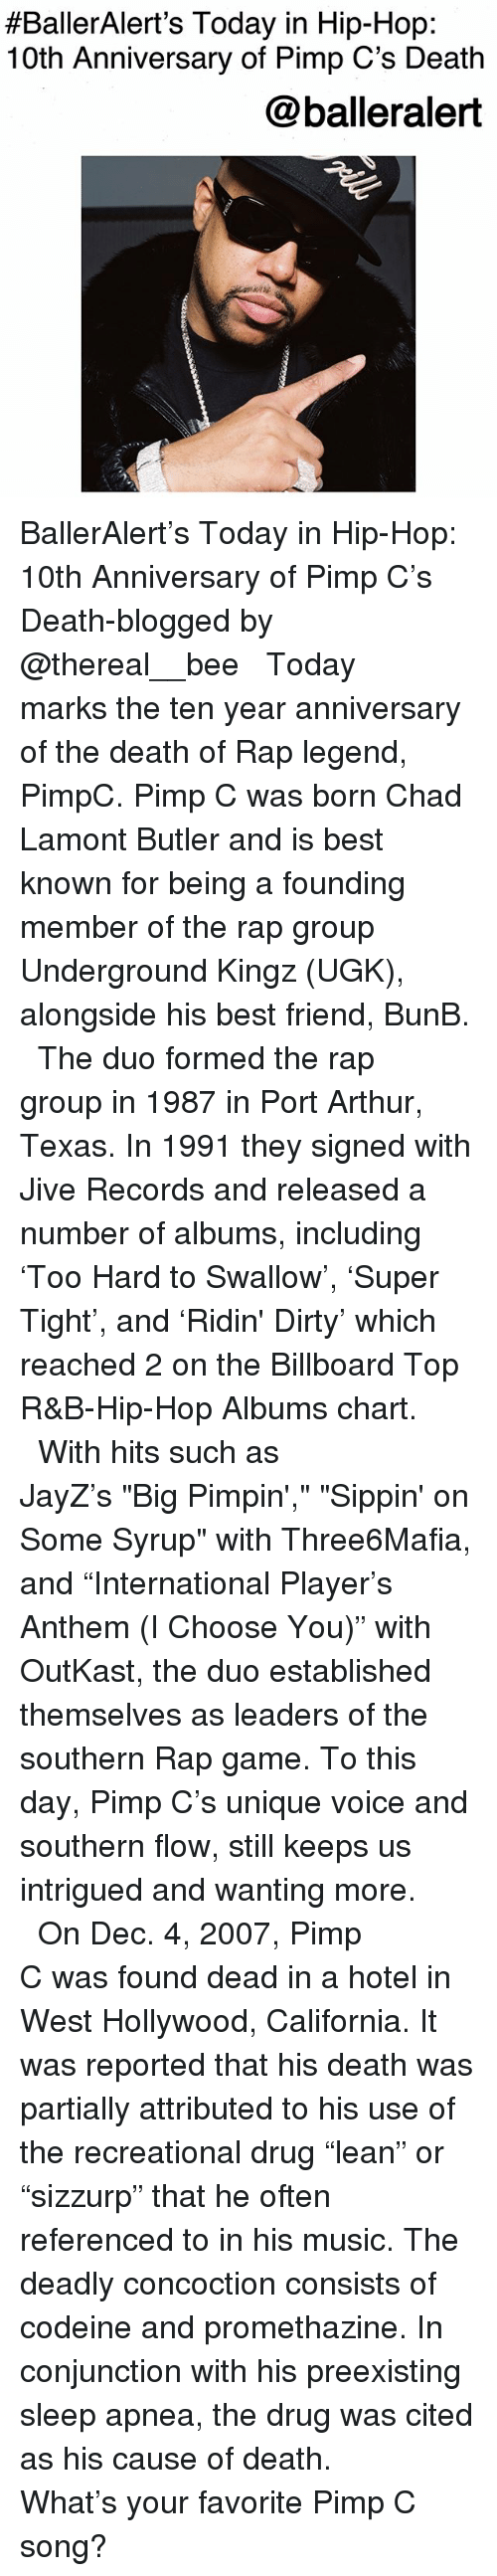 """Arthur, Best Friend, and Billboard:  #BallerAlert's Today in Hip-Hop:  10th Anniversary of Pimp C's Death  @balleralert BallerAlert's Today in Hip-Hop: 10th Anniversary of Pimp C's Death-blogged by @thereal__bee ⠀⠀⠀⠀⠀⠀⠀⠀⠀ ⠀⠀ Today marks the ten year anniversary of the death of Rap legend, PimpC. Pimp C was born Chad Lamont Butler and is best known for being a founding member of the rap group Underground Kingz (UGK), alongside his best friend, BunB. ⠀⠀⠀⠀⠀⠀⠀⠀⠀ ⠀⠀ The duo formed the rap group in 1987 in Port Arthur, Texas. In 1991 they signed with Jive Records and released a number of albums, including 'Too Hard to Swallow', 'Super Tight', and 'Ridin' Dirty' which reached 2 on the Billboard Top R&B-Hip-Hop Albums chart. ⠀⠀⠀⠀⠀⠀⠀⠀⠀ ⠀⠀ With hits such as JayZ's """"Big Pimpin',"""" """"Sippin' on Some Syrup"""" with Three6Mafia, and """"International Player's Anthem (I Choose You)"""" with OutKast, the duo established themselves as leaders of the southern Rap game. To this day, Pimp C's unique voice and southern flow, still keeps us intrigued and wanting more. ⠀⠀⠀⠀⠀⠀⠀⠀⠀ ⠀⠀ On Dec. 4, 2007, Pimp C was found dead in a hotel in West Hollywood, California. It was reported that his death was partially attributed to his use of the recreational drug """"lean"""" or """"sizzurp"""" that he often referenced to in his music. The deadly concoction consists of codeine and promethazine. In conjunction with his preexisting sleep apnea, the drug was cited as his cause of death. ⠀⠀⠀⠀⠀⠀⠀⠀⠀ ⠀⠀ What's your favorite Pimp C song?"""